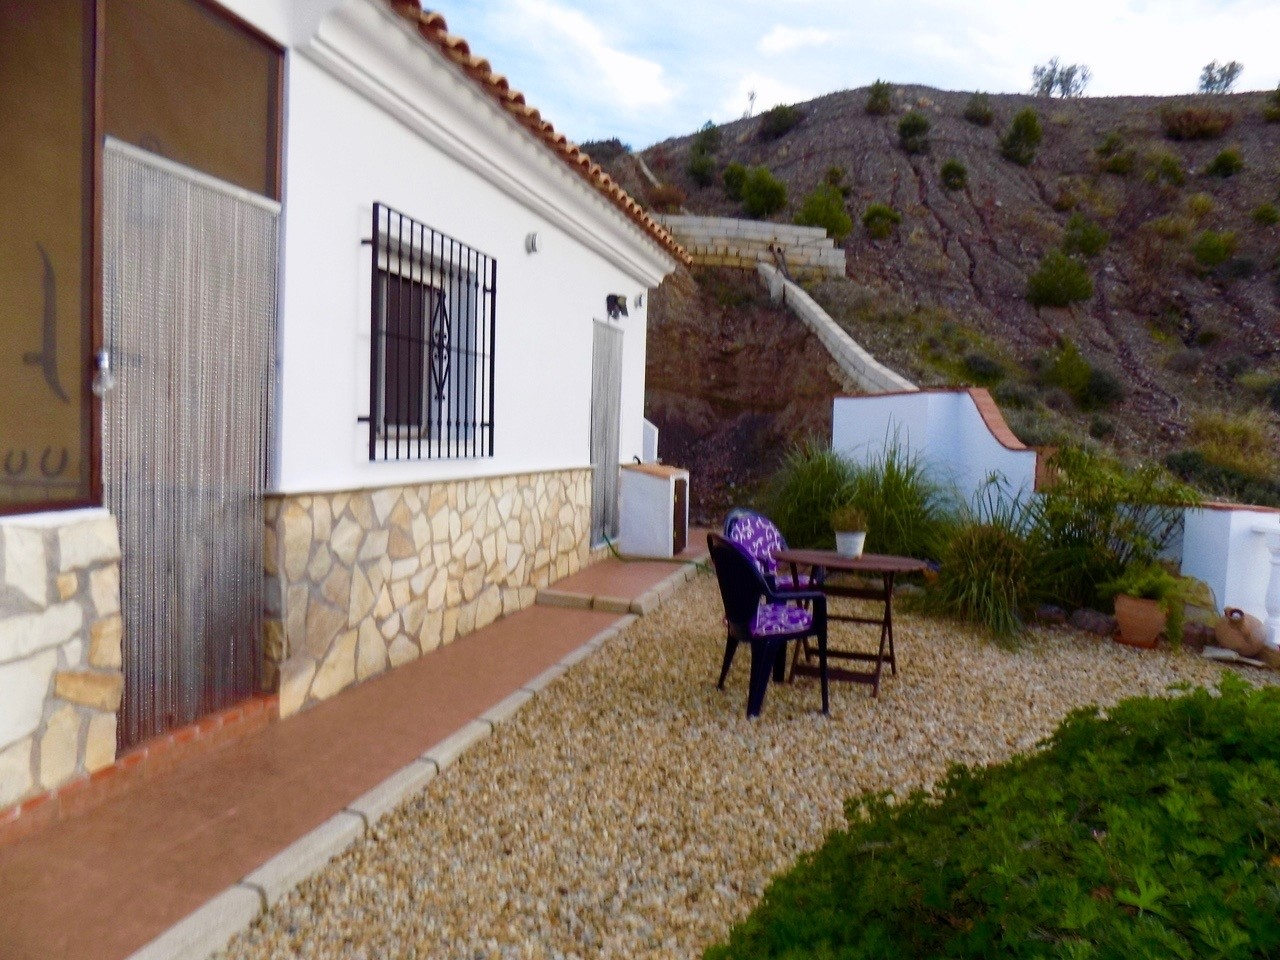 Propery For Sale in Huércal-Overa, Spain image 17